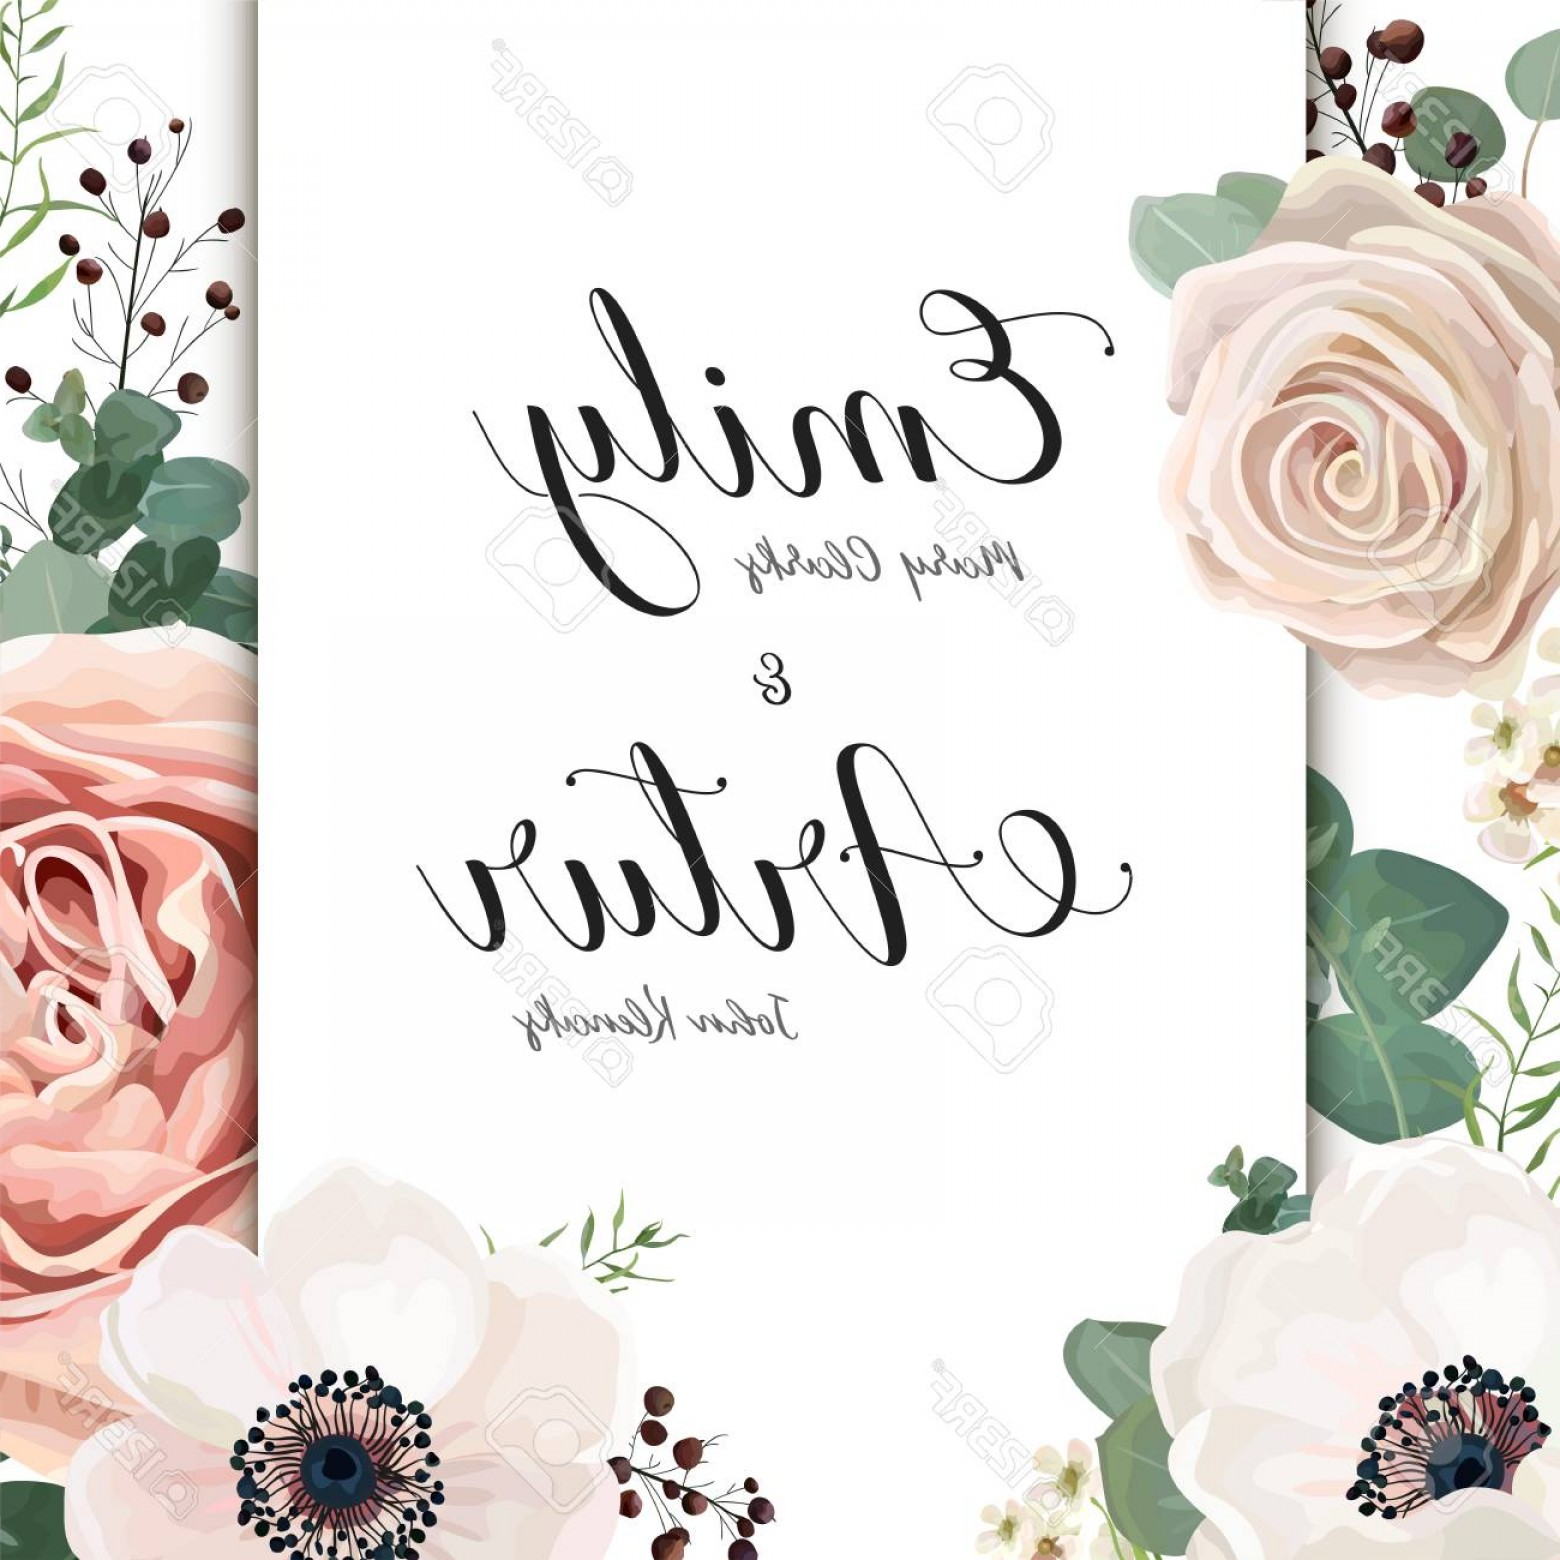 Rustic Wedding Invitation Vector: Photostock Vector Floral Wedding Invitation Elegant Invite Card Vector Design Garden Flower Antique Pink Peach Powder